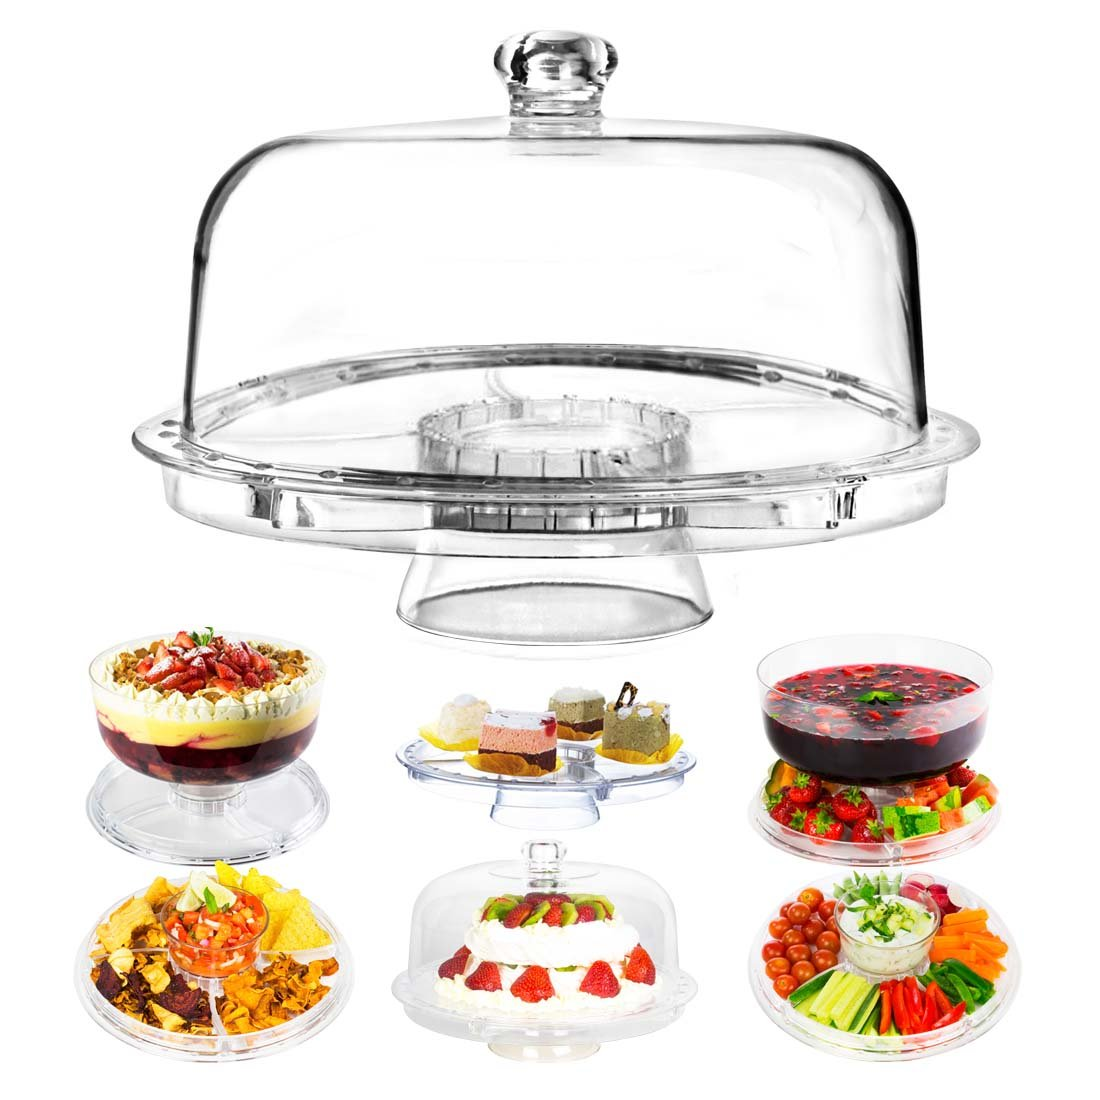 Dome Cake Stand   6 in 1 Multifunctional 12 Inch Serving Platter with Crystal Clear Acrylic Display for Dessert Tray Fruit Cookie Sweets Muffin Salad Server Punch Bowl for Weddings and Parties   1273